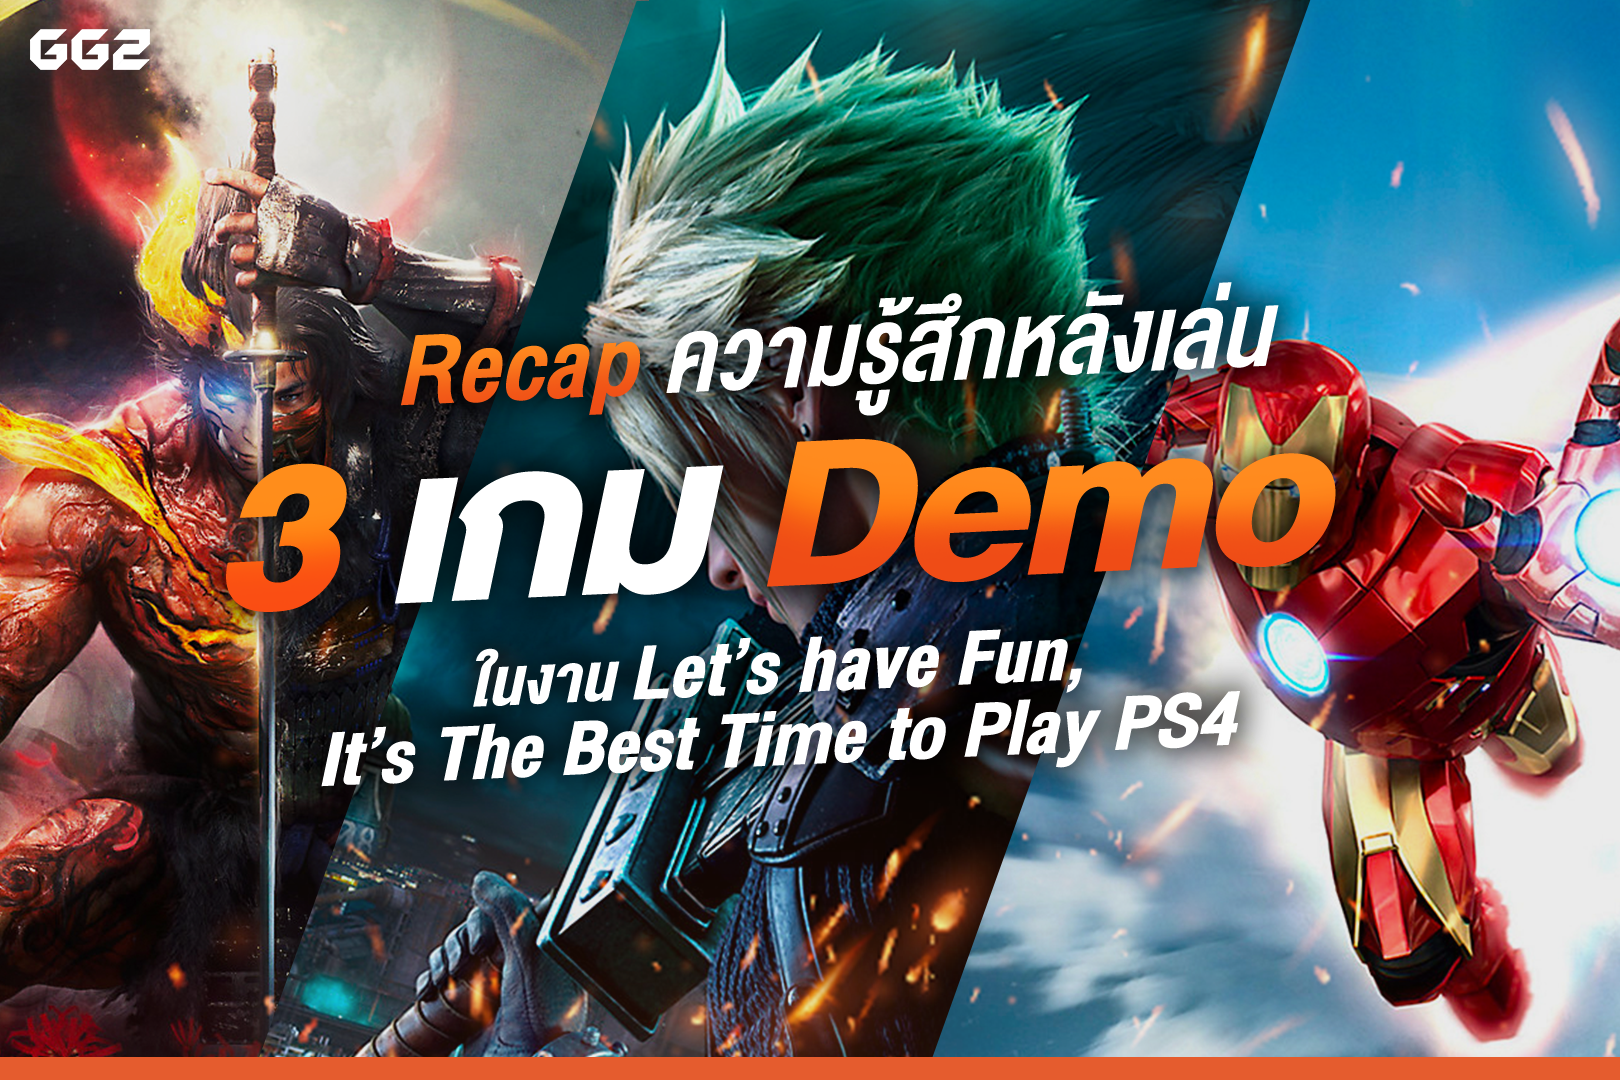 Recap ความรู้สึกหลังลองเล่น Demo ในงาน Let's have Fun, It's The Best Time to Play PS4